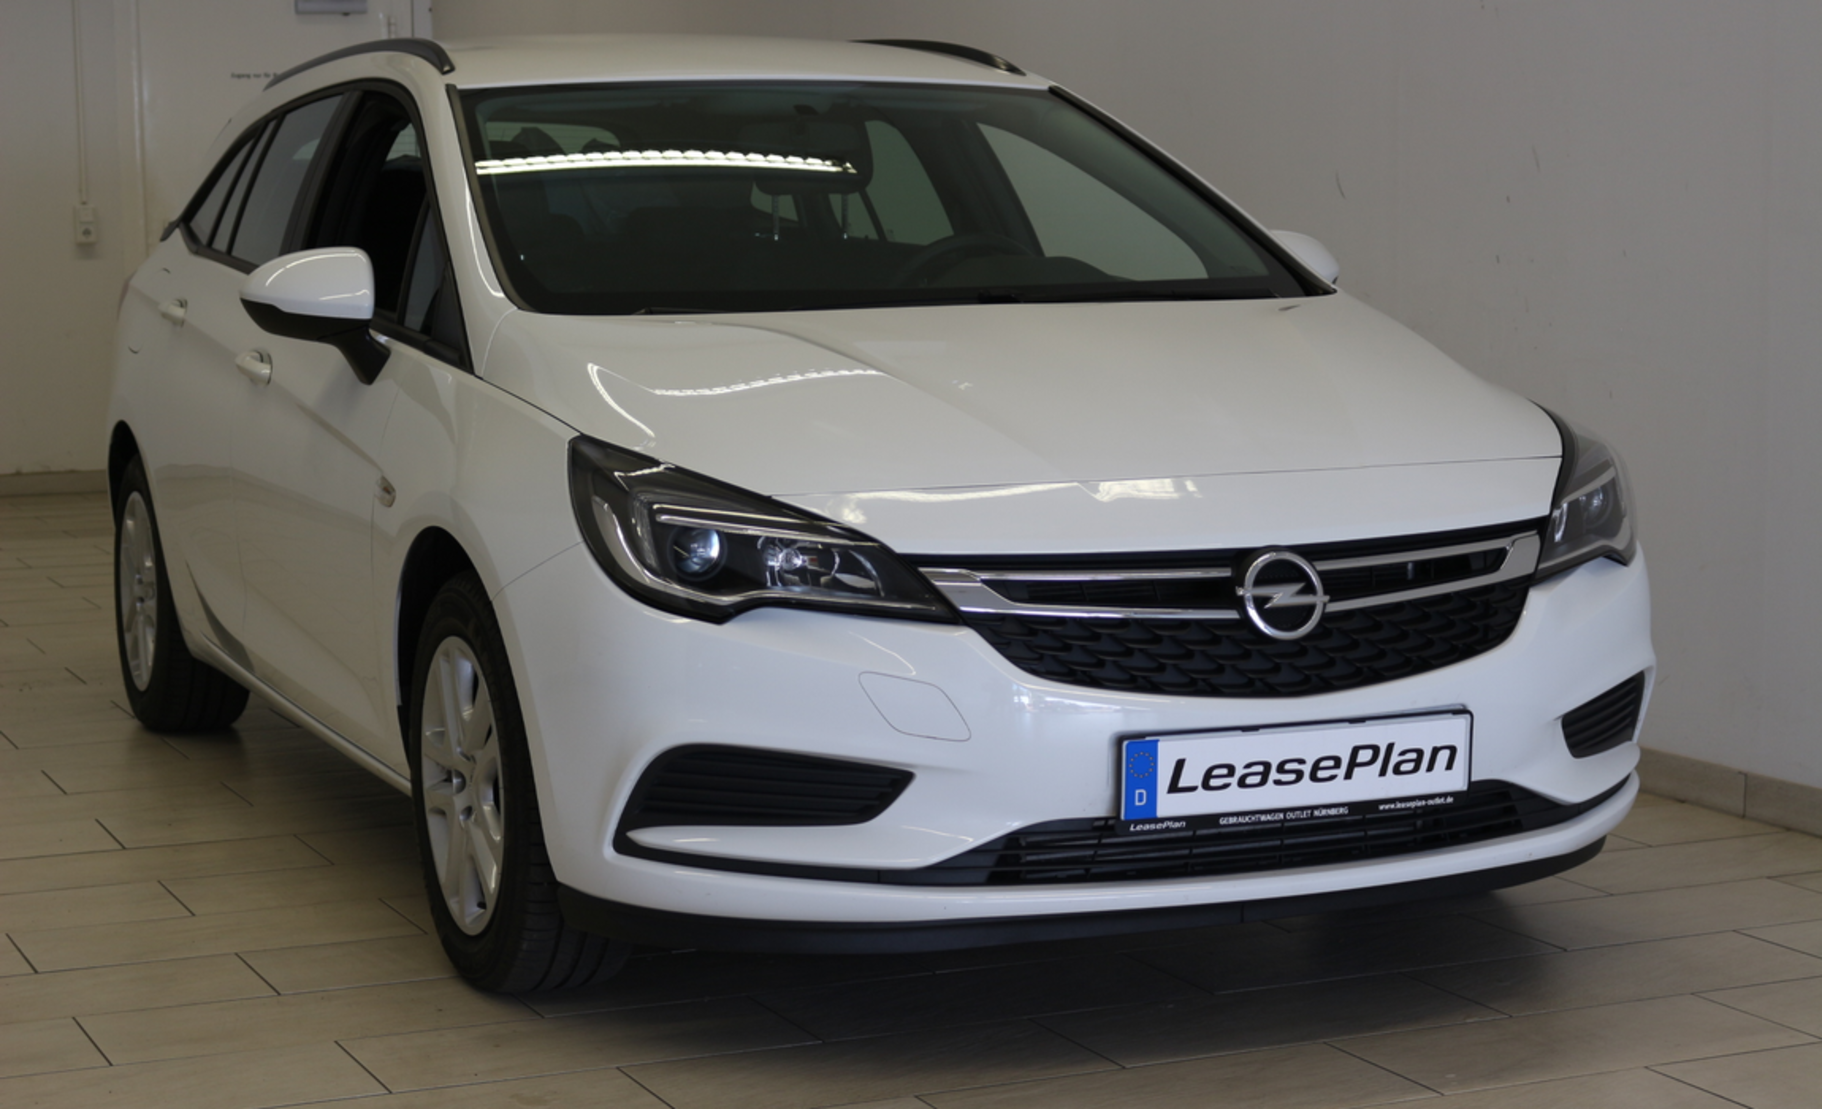 Opel Astra 1.6 D CDTI Start/Stop Sports Tourer Edition (683304) detail1